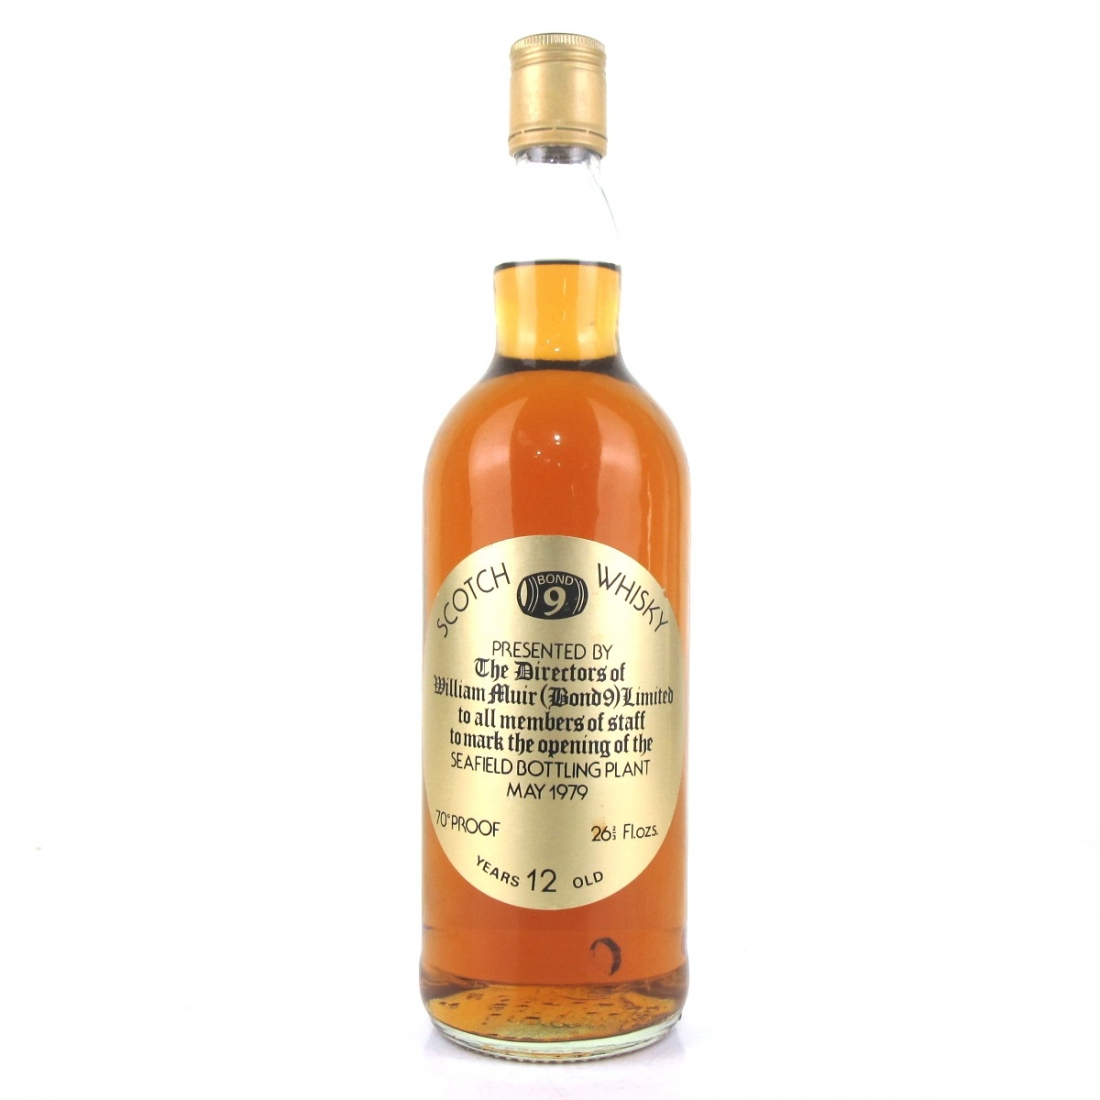 Bond 9 1979 Opening Of Seafield Bottling Plant 12 Year Old